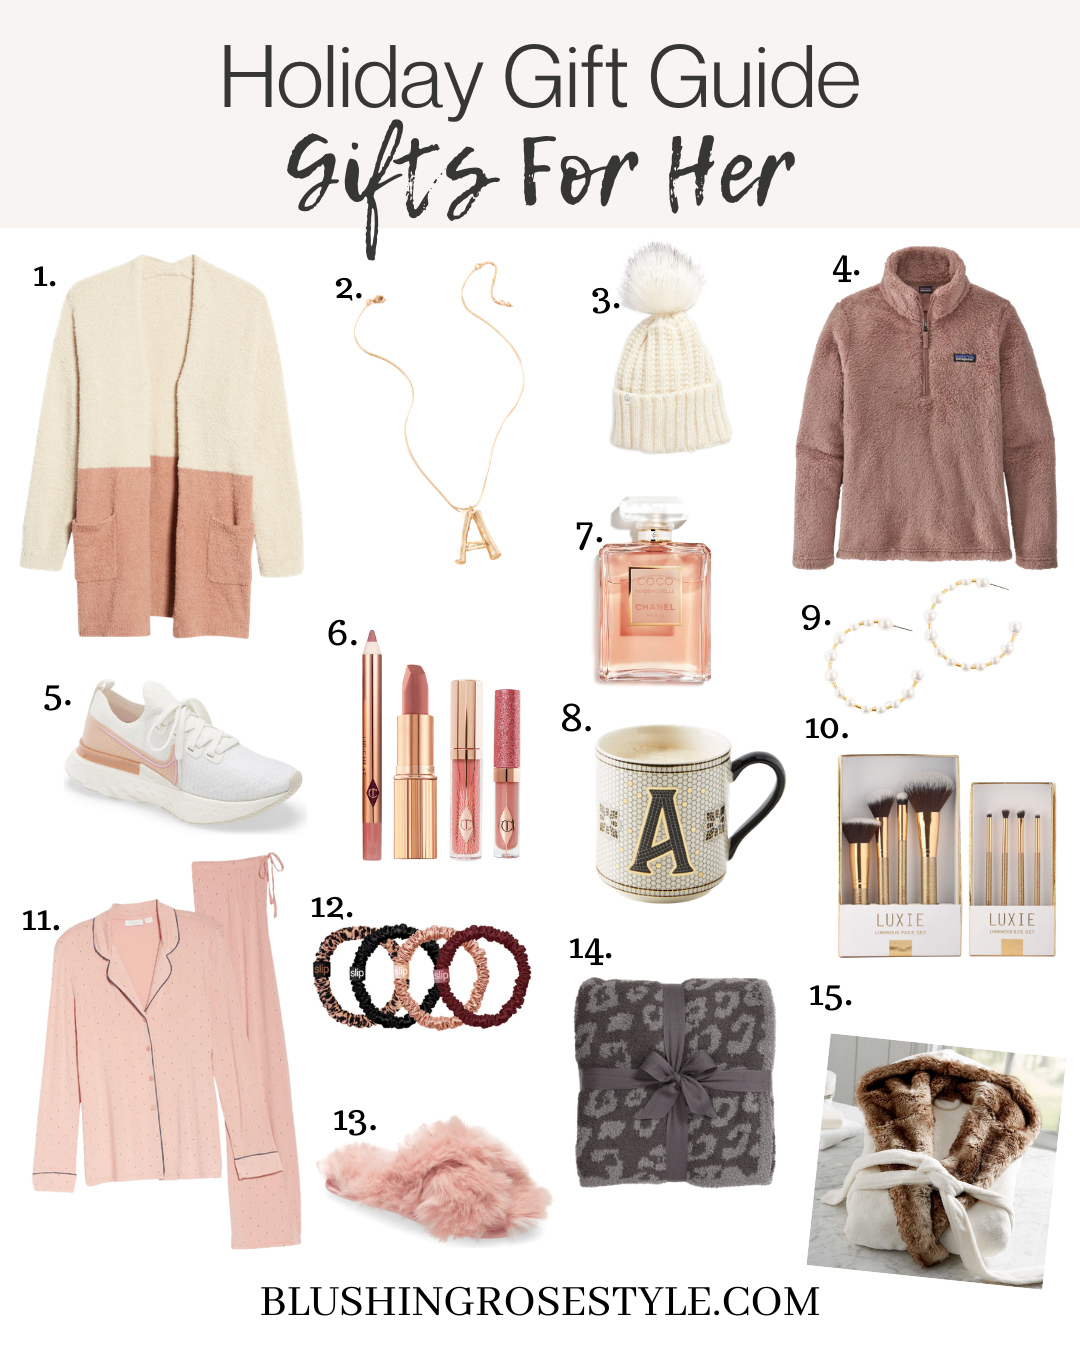 Gifts and Gadgets For Her